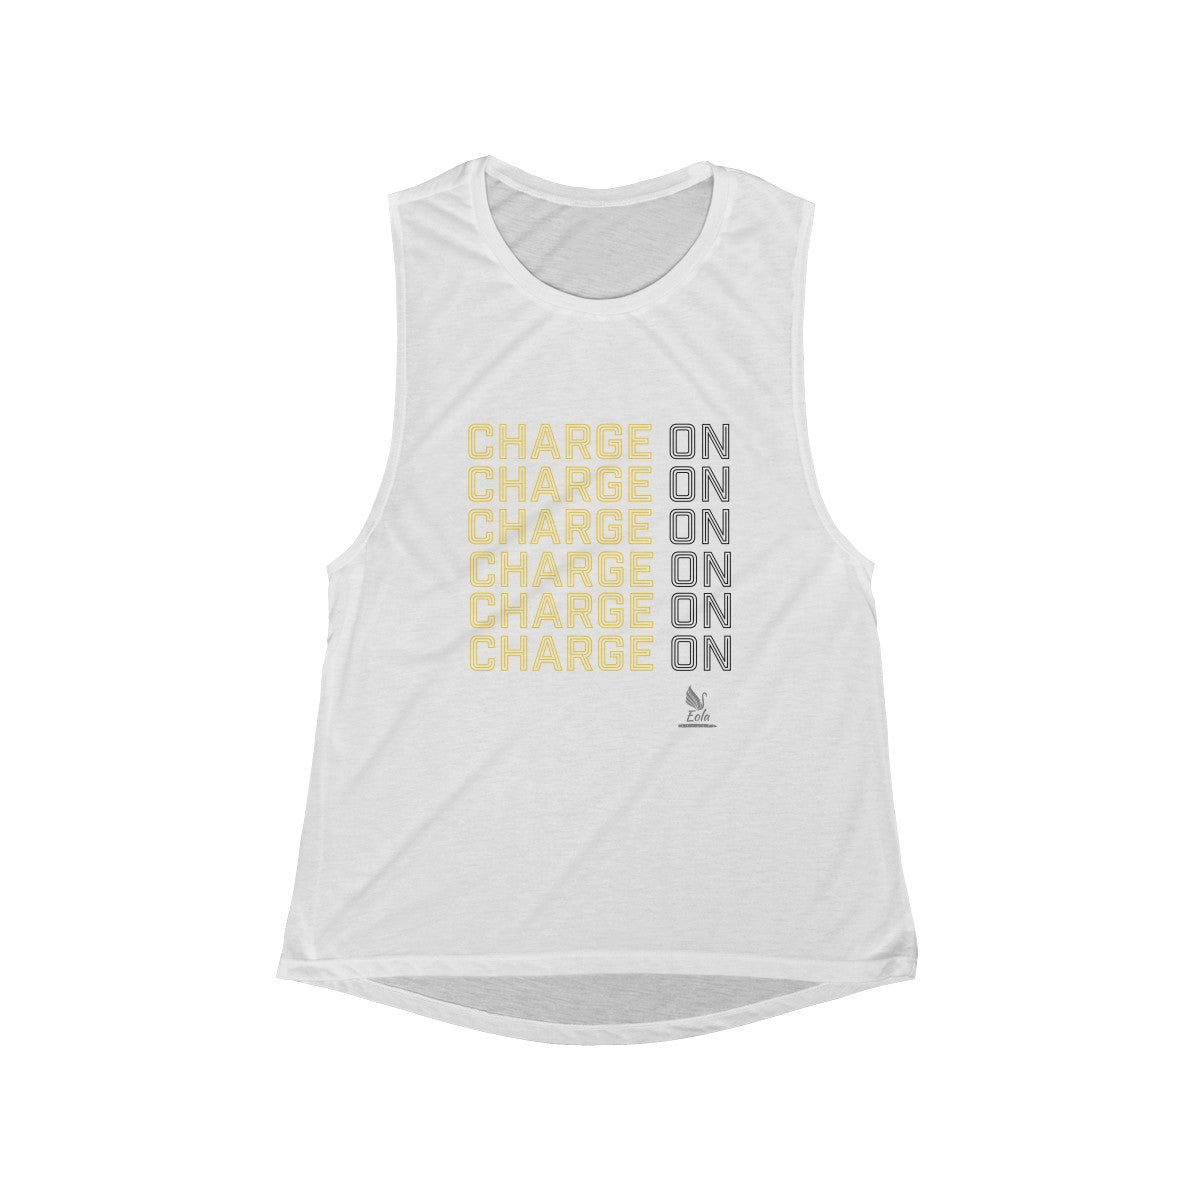 994dadae Women's Flowy Scoop Charge On Tank